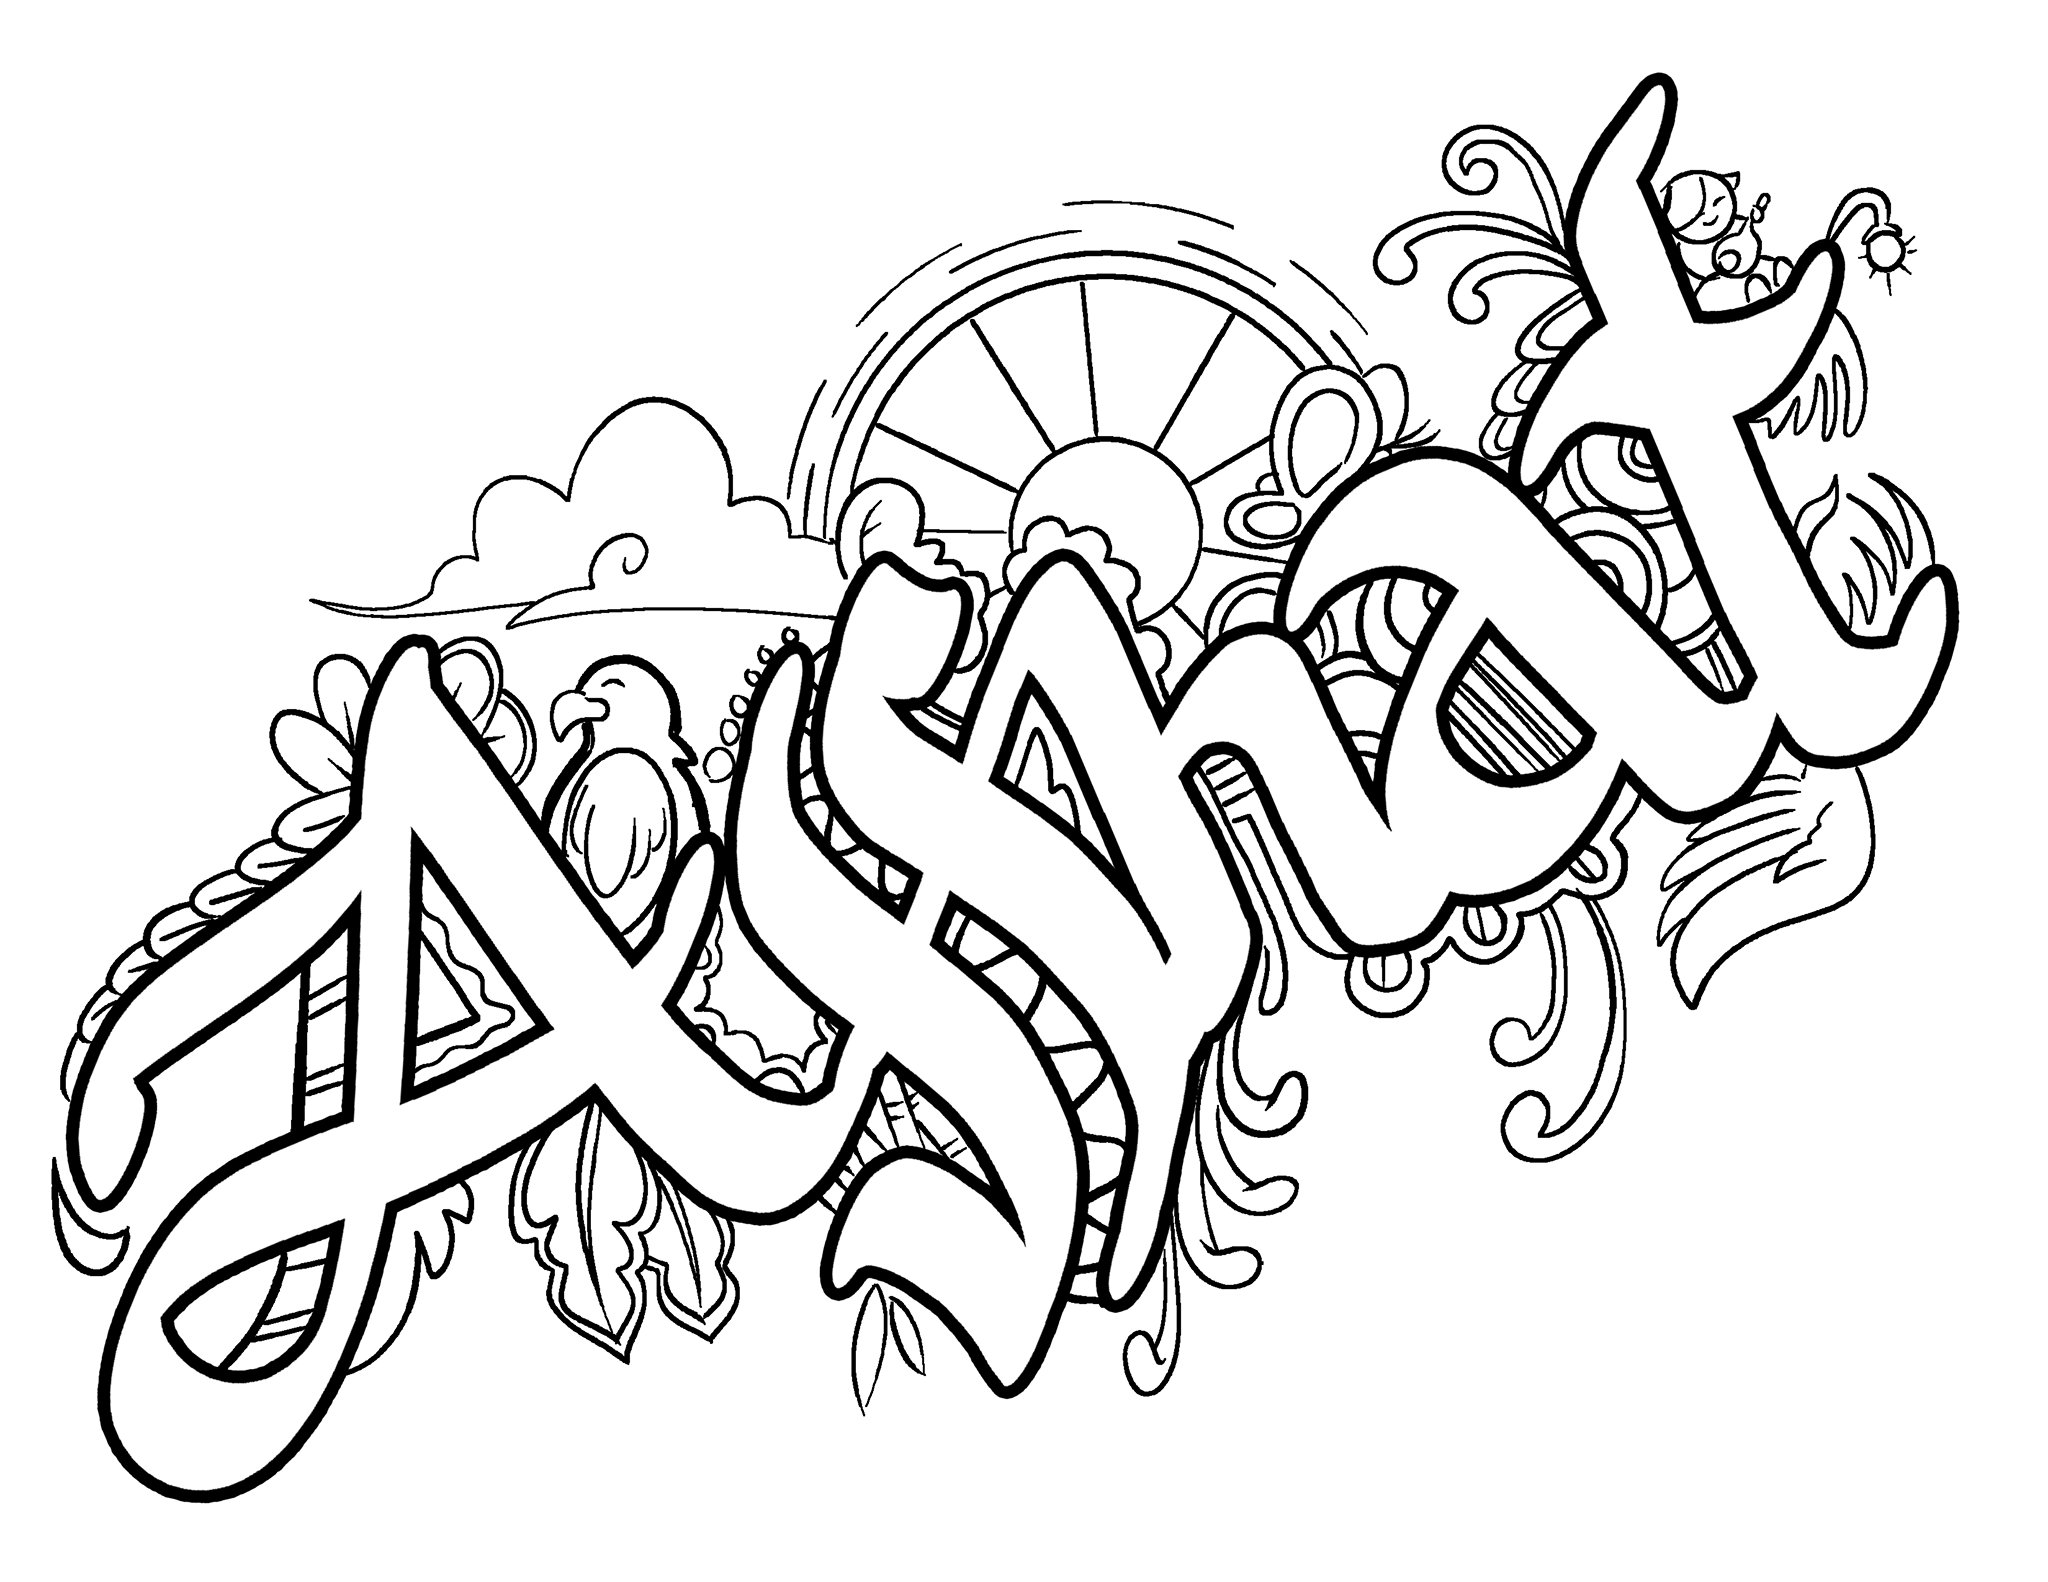 Swear word coloring book volume 1 - Find This Pin And More On Swear Word Coloring